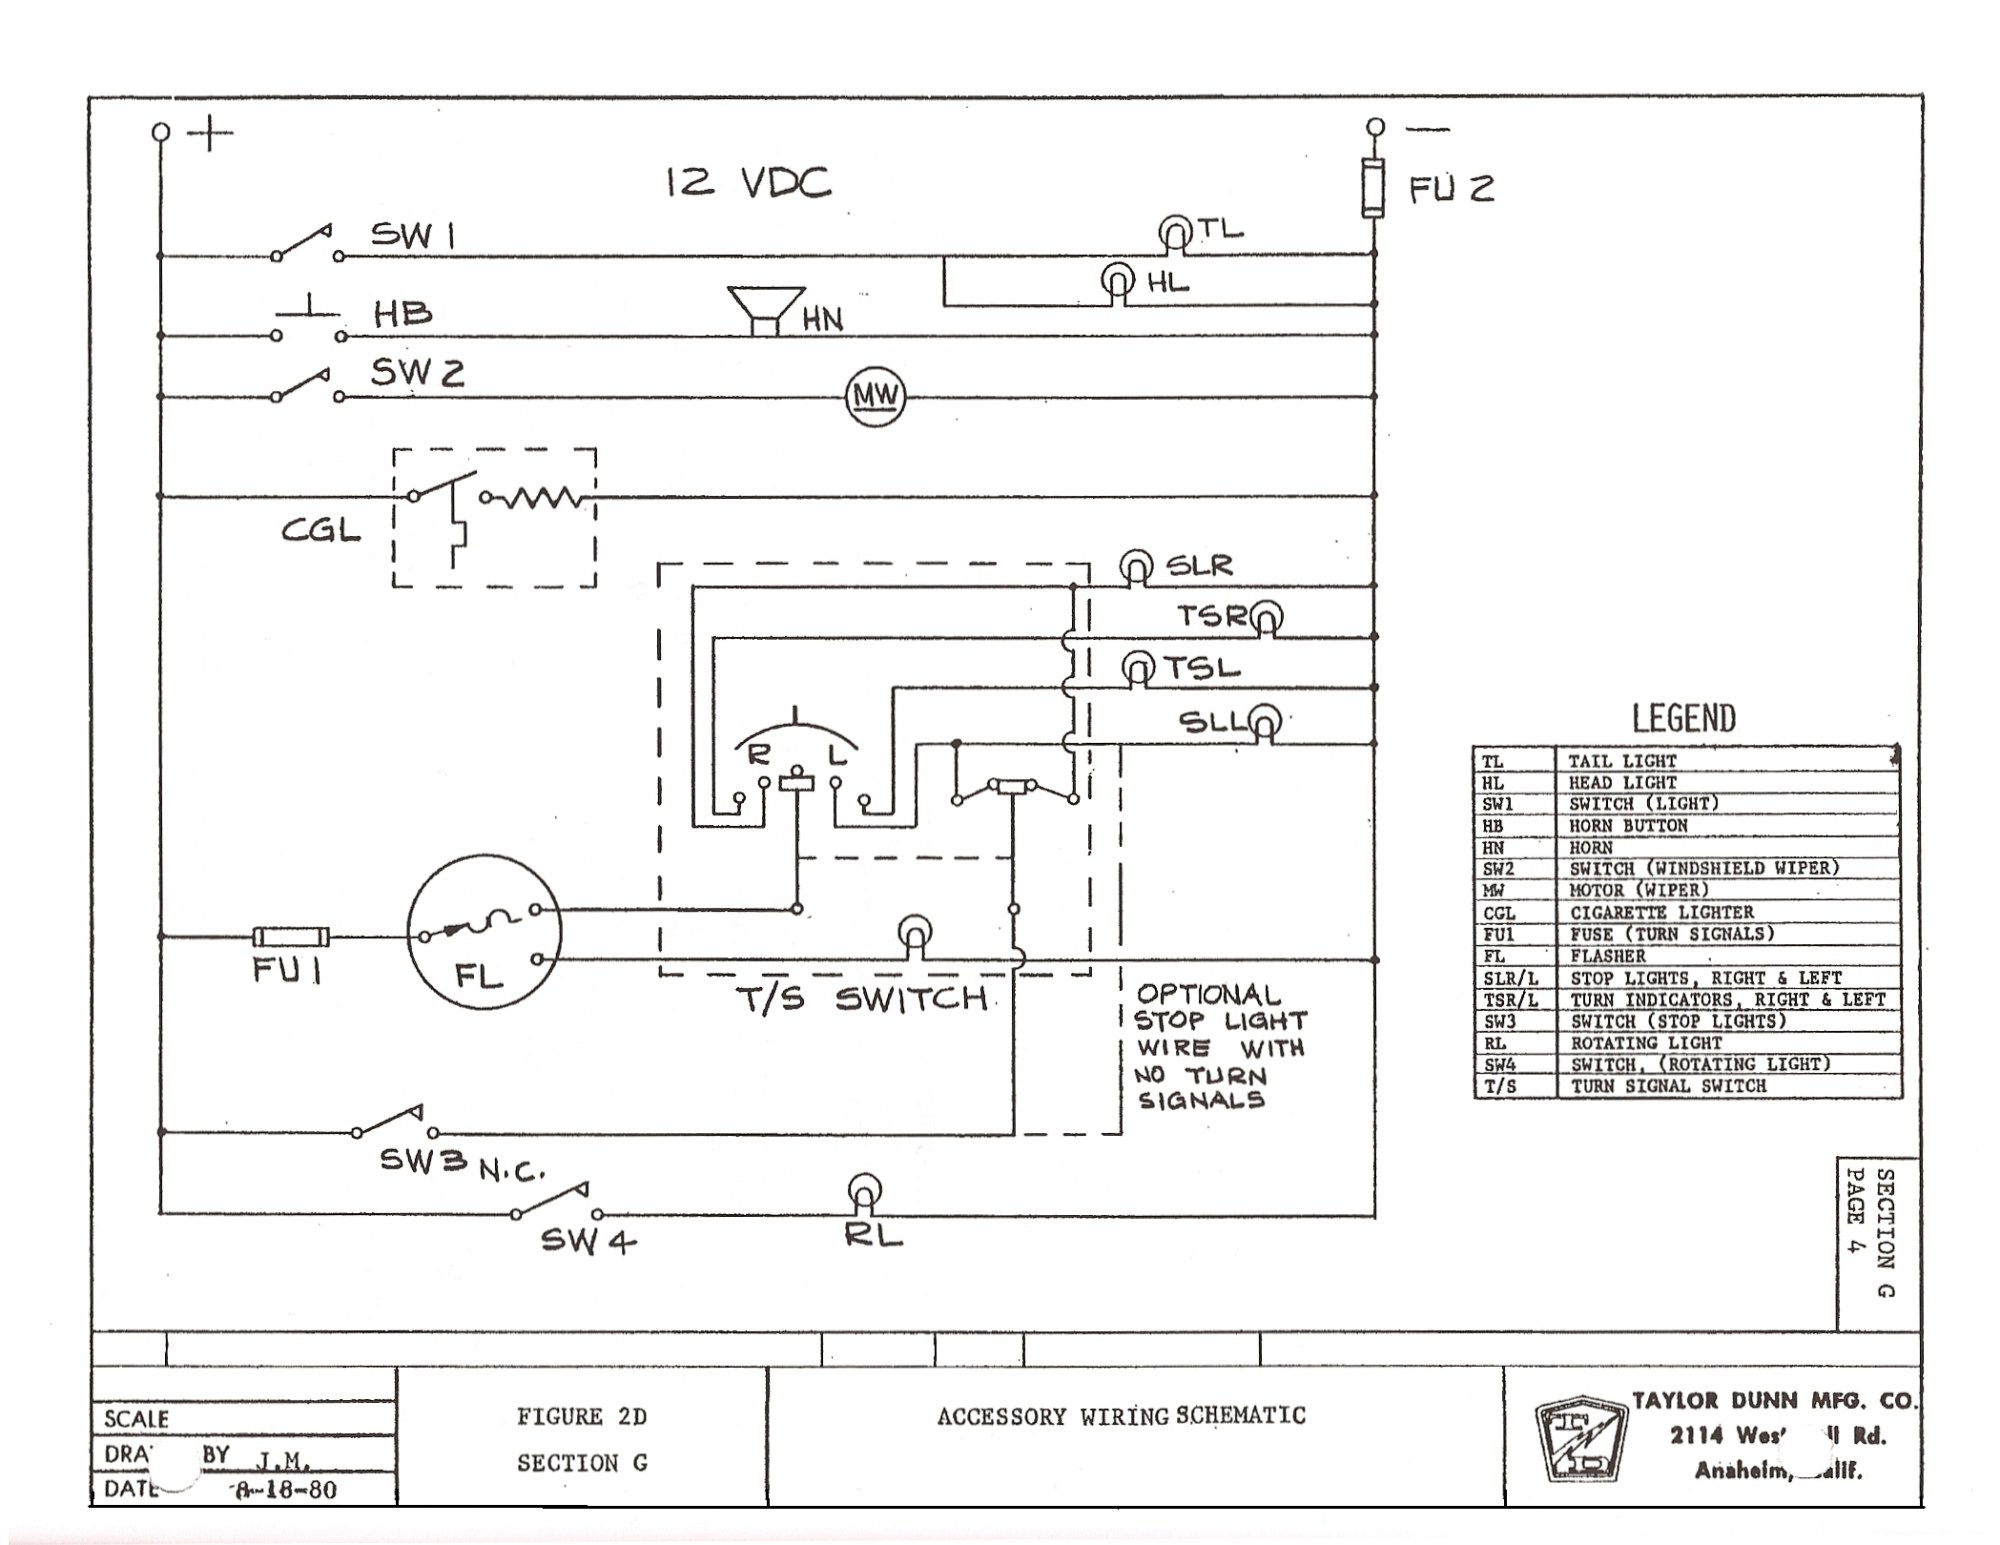 hight resolution of taylor wiring diagram wiring diagram for you taylor dunn 36 volt wiring diagram taylor dunn wiring diagram